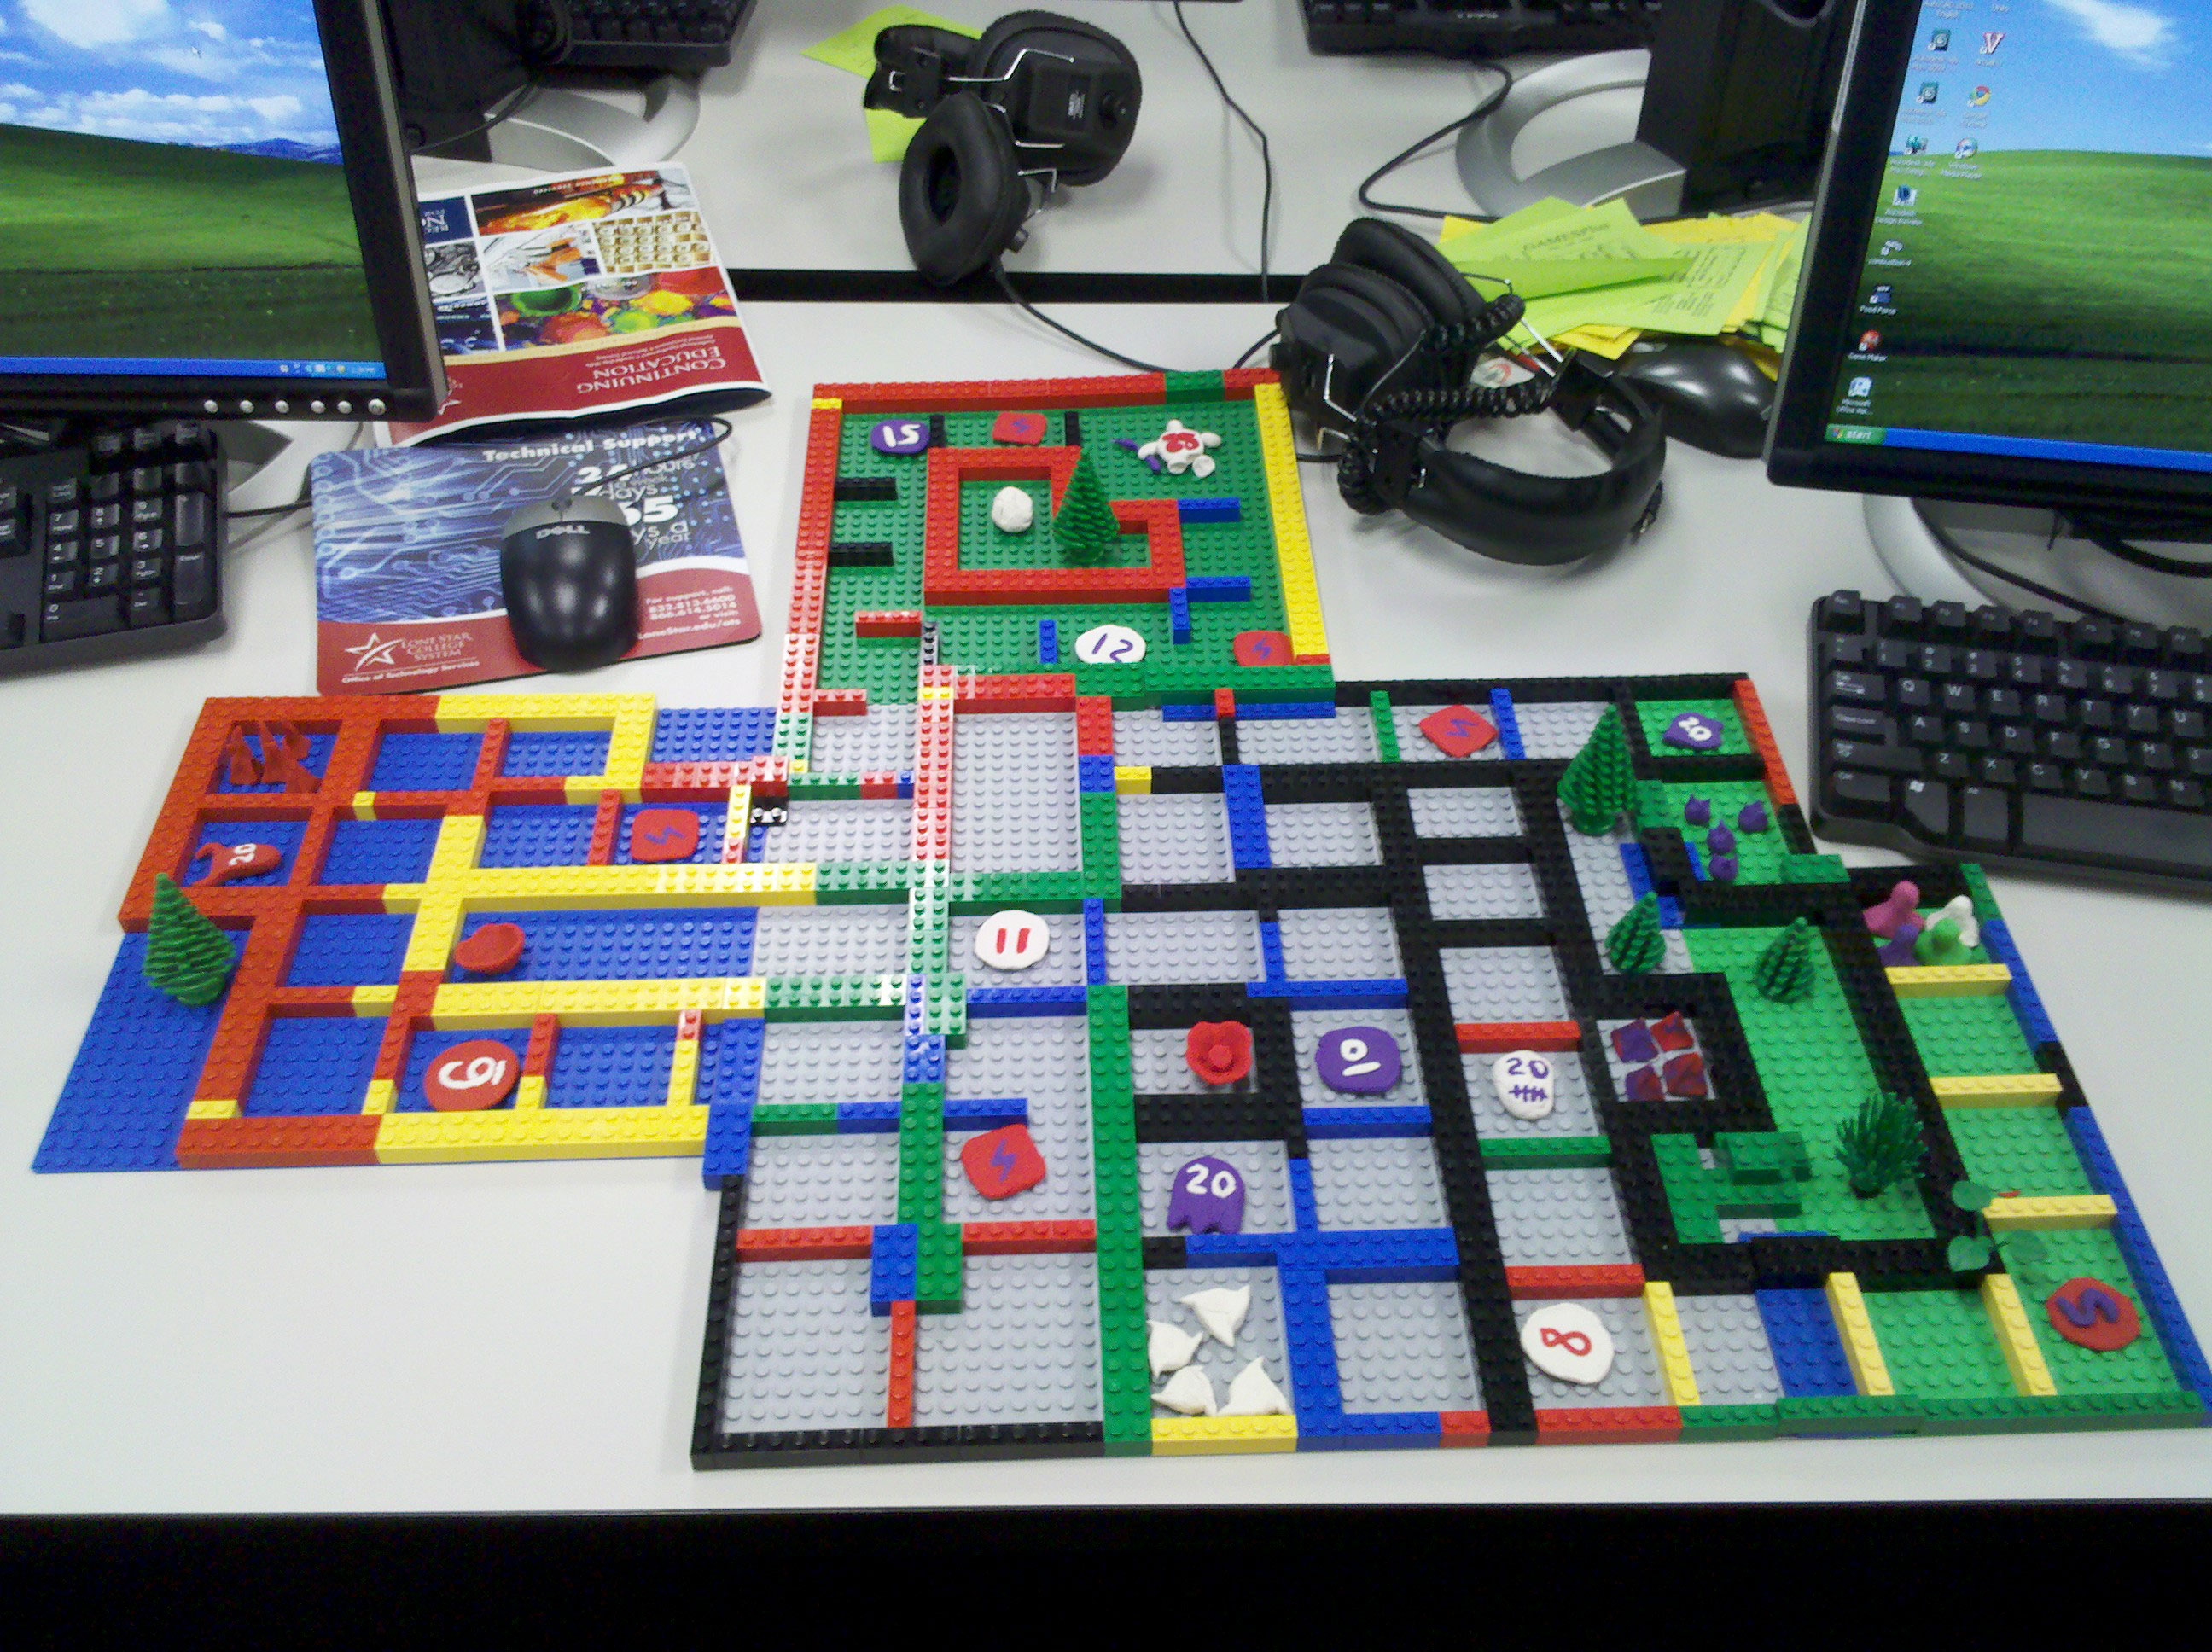 Delightful Public Invited To Test Out New Games At Game Design And Simulation Showcase